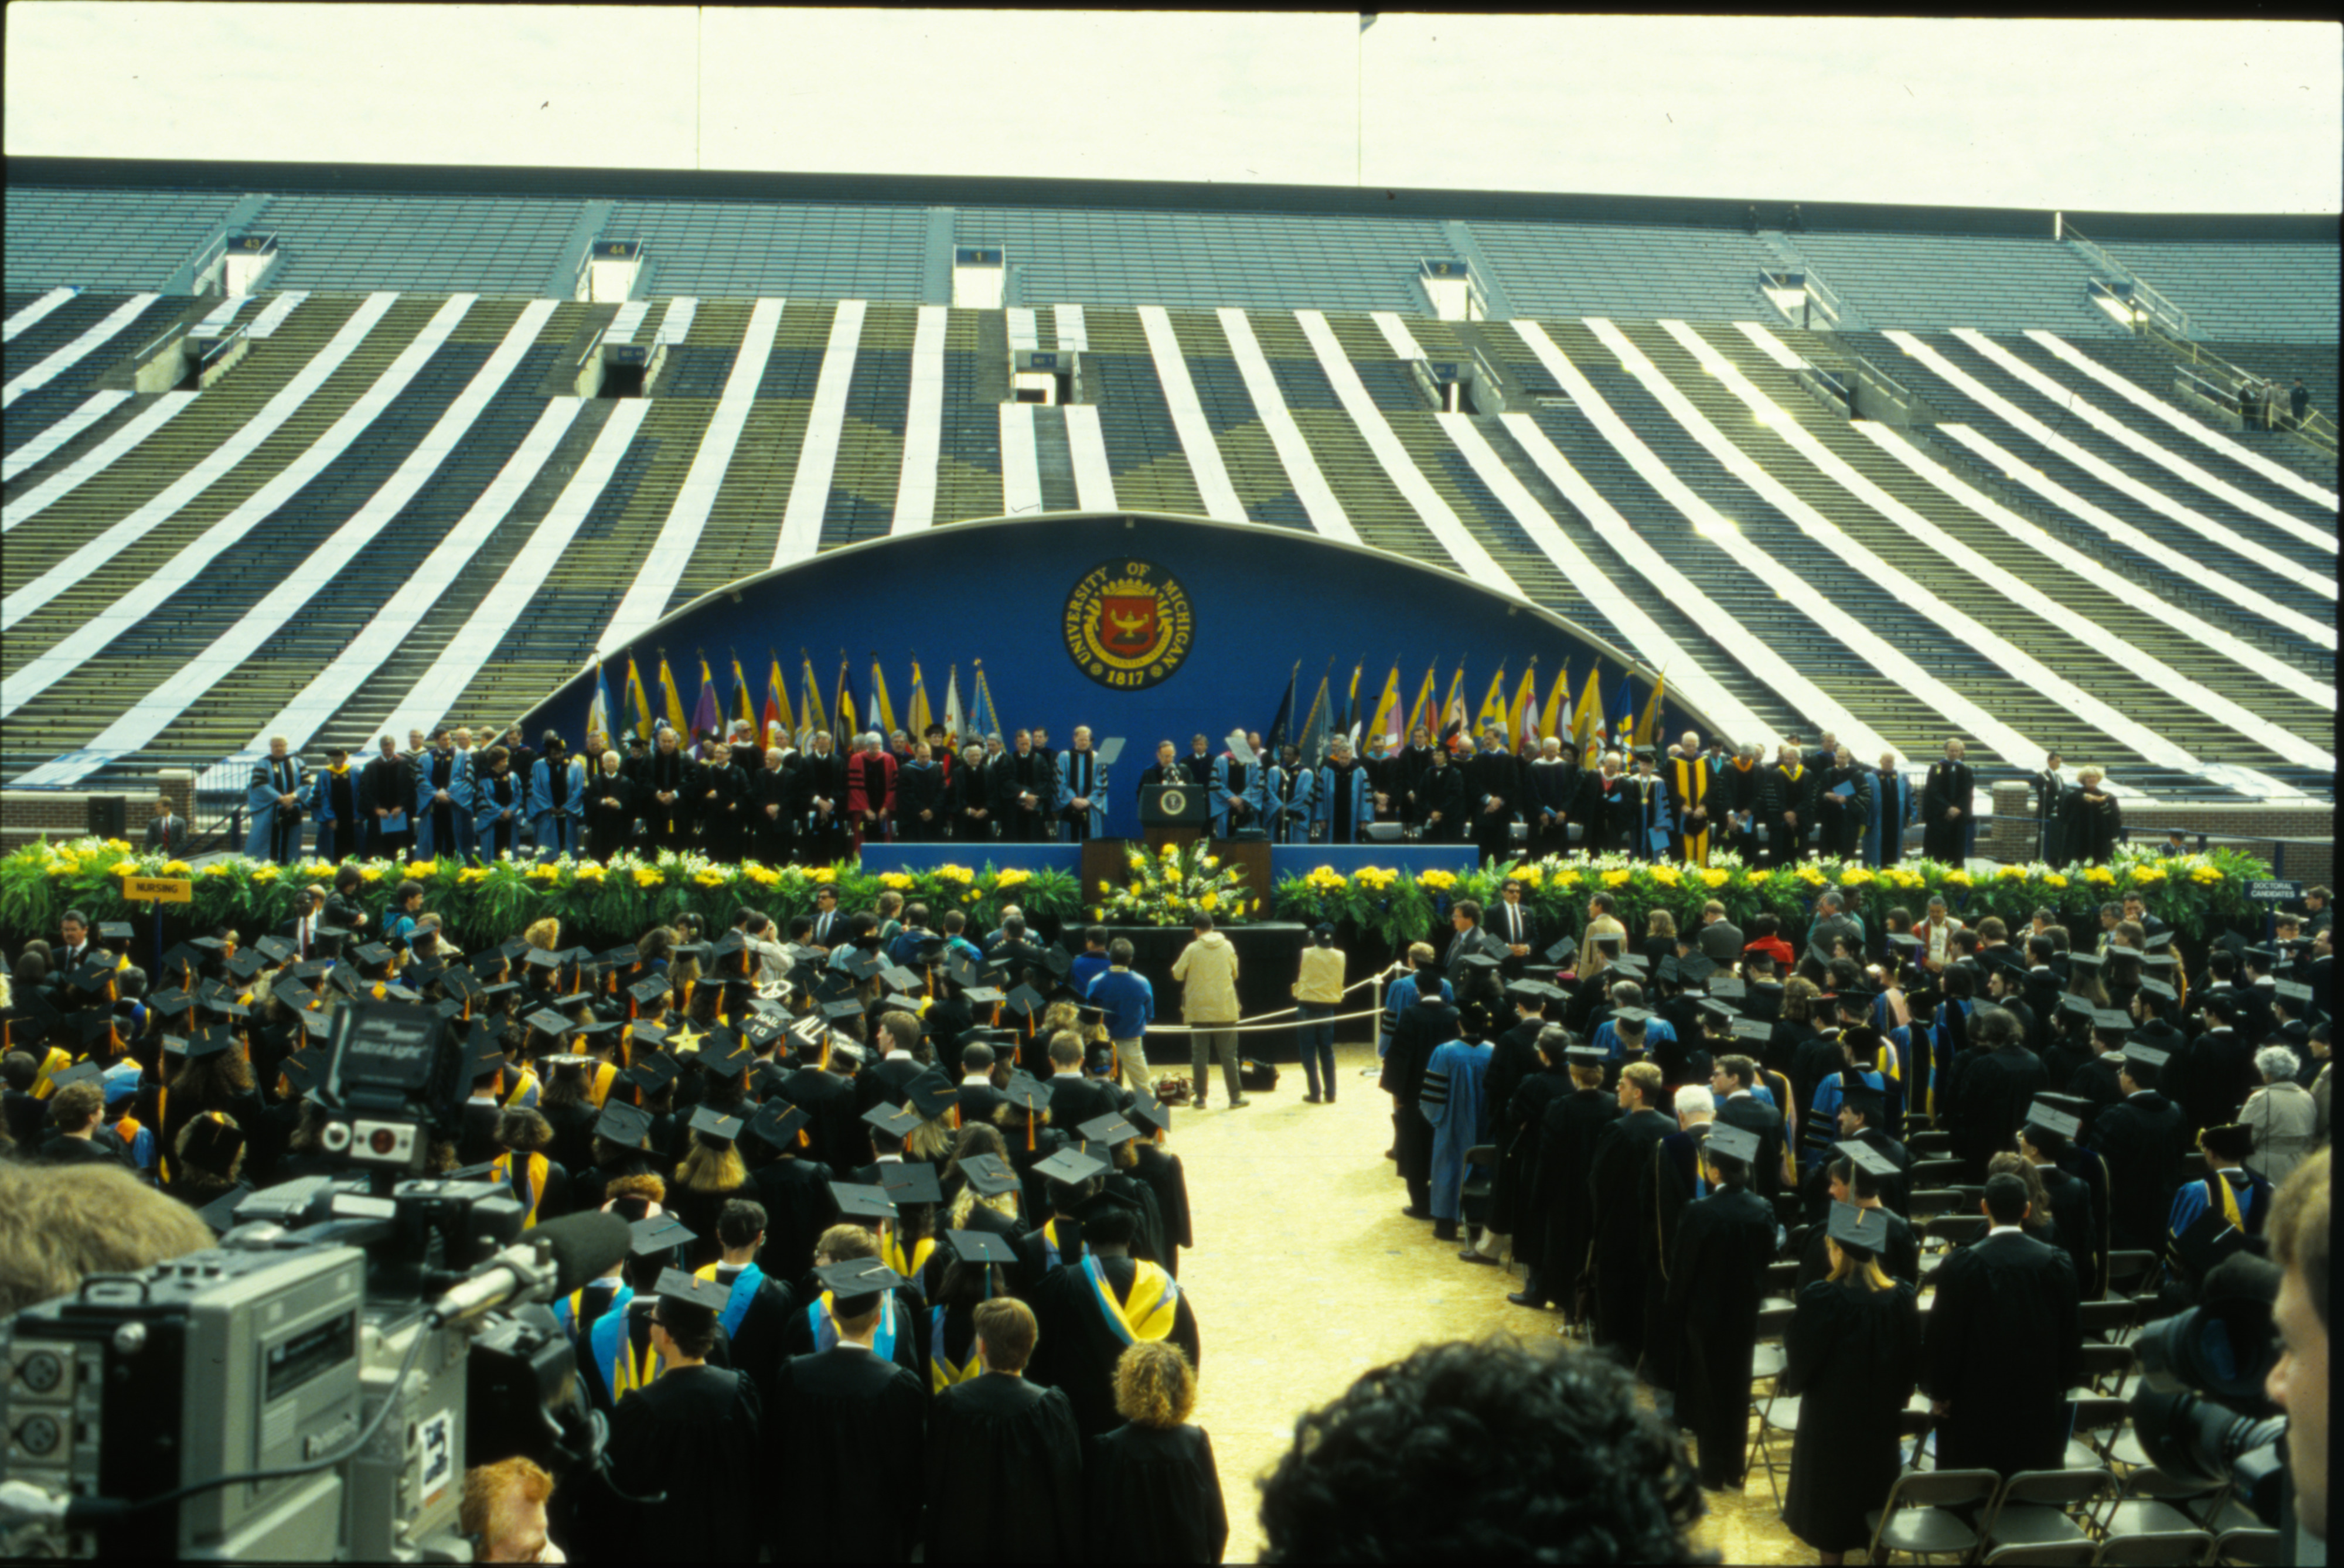 President George H. W. Bush speaking at commencement, May 4, 1991 image